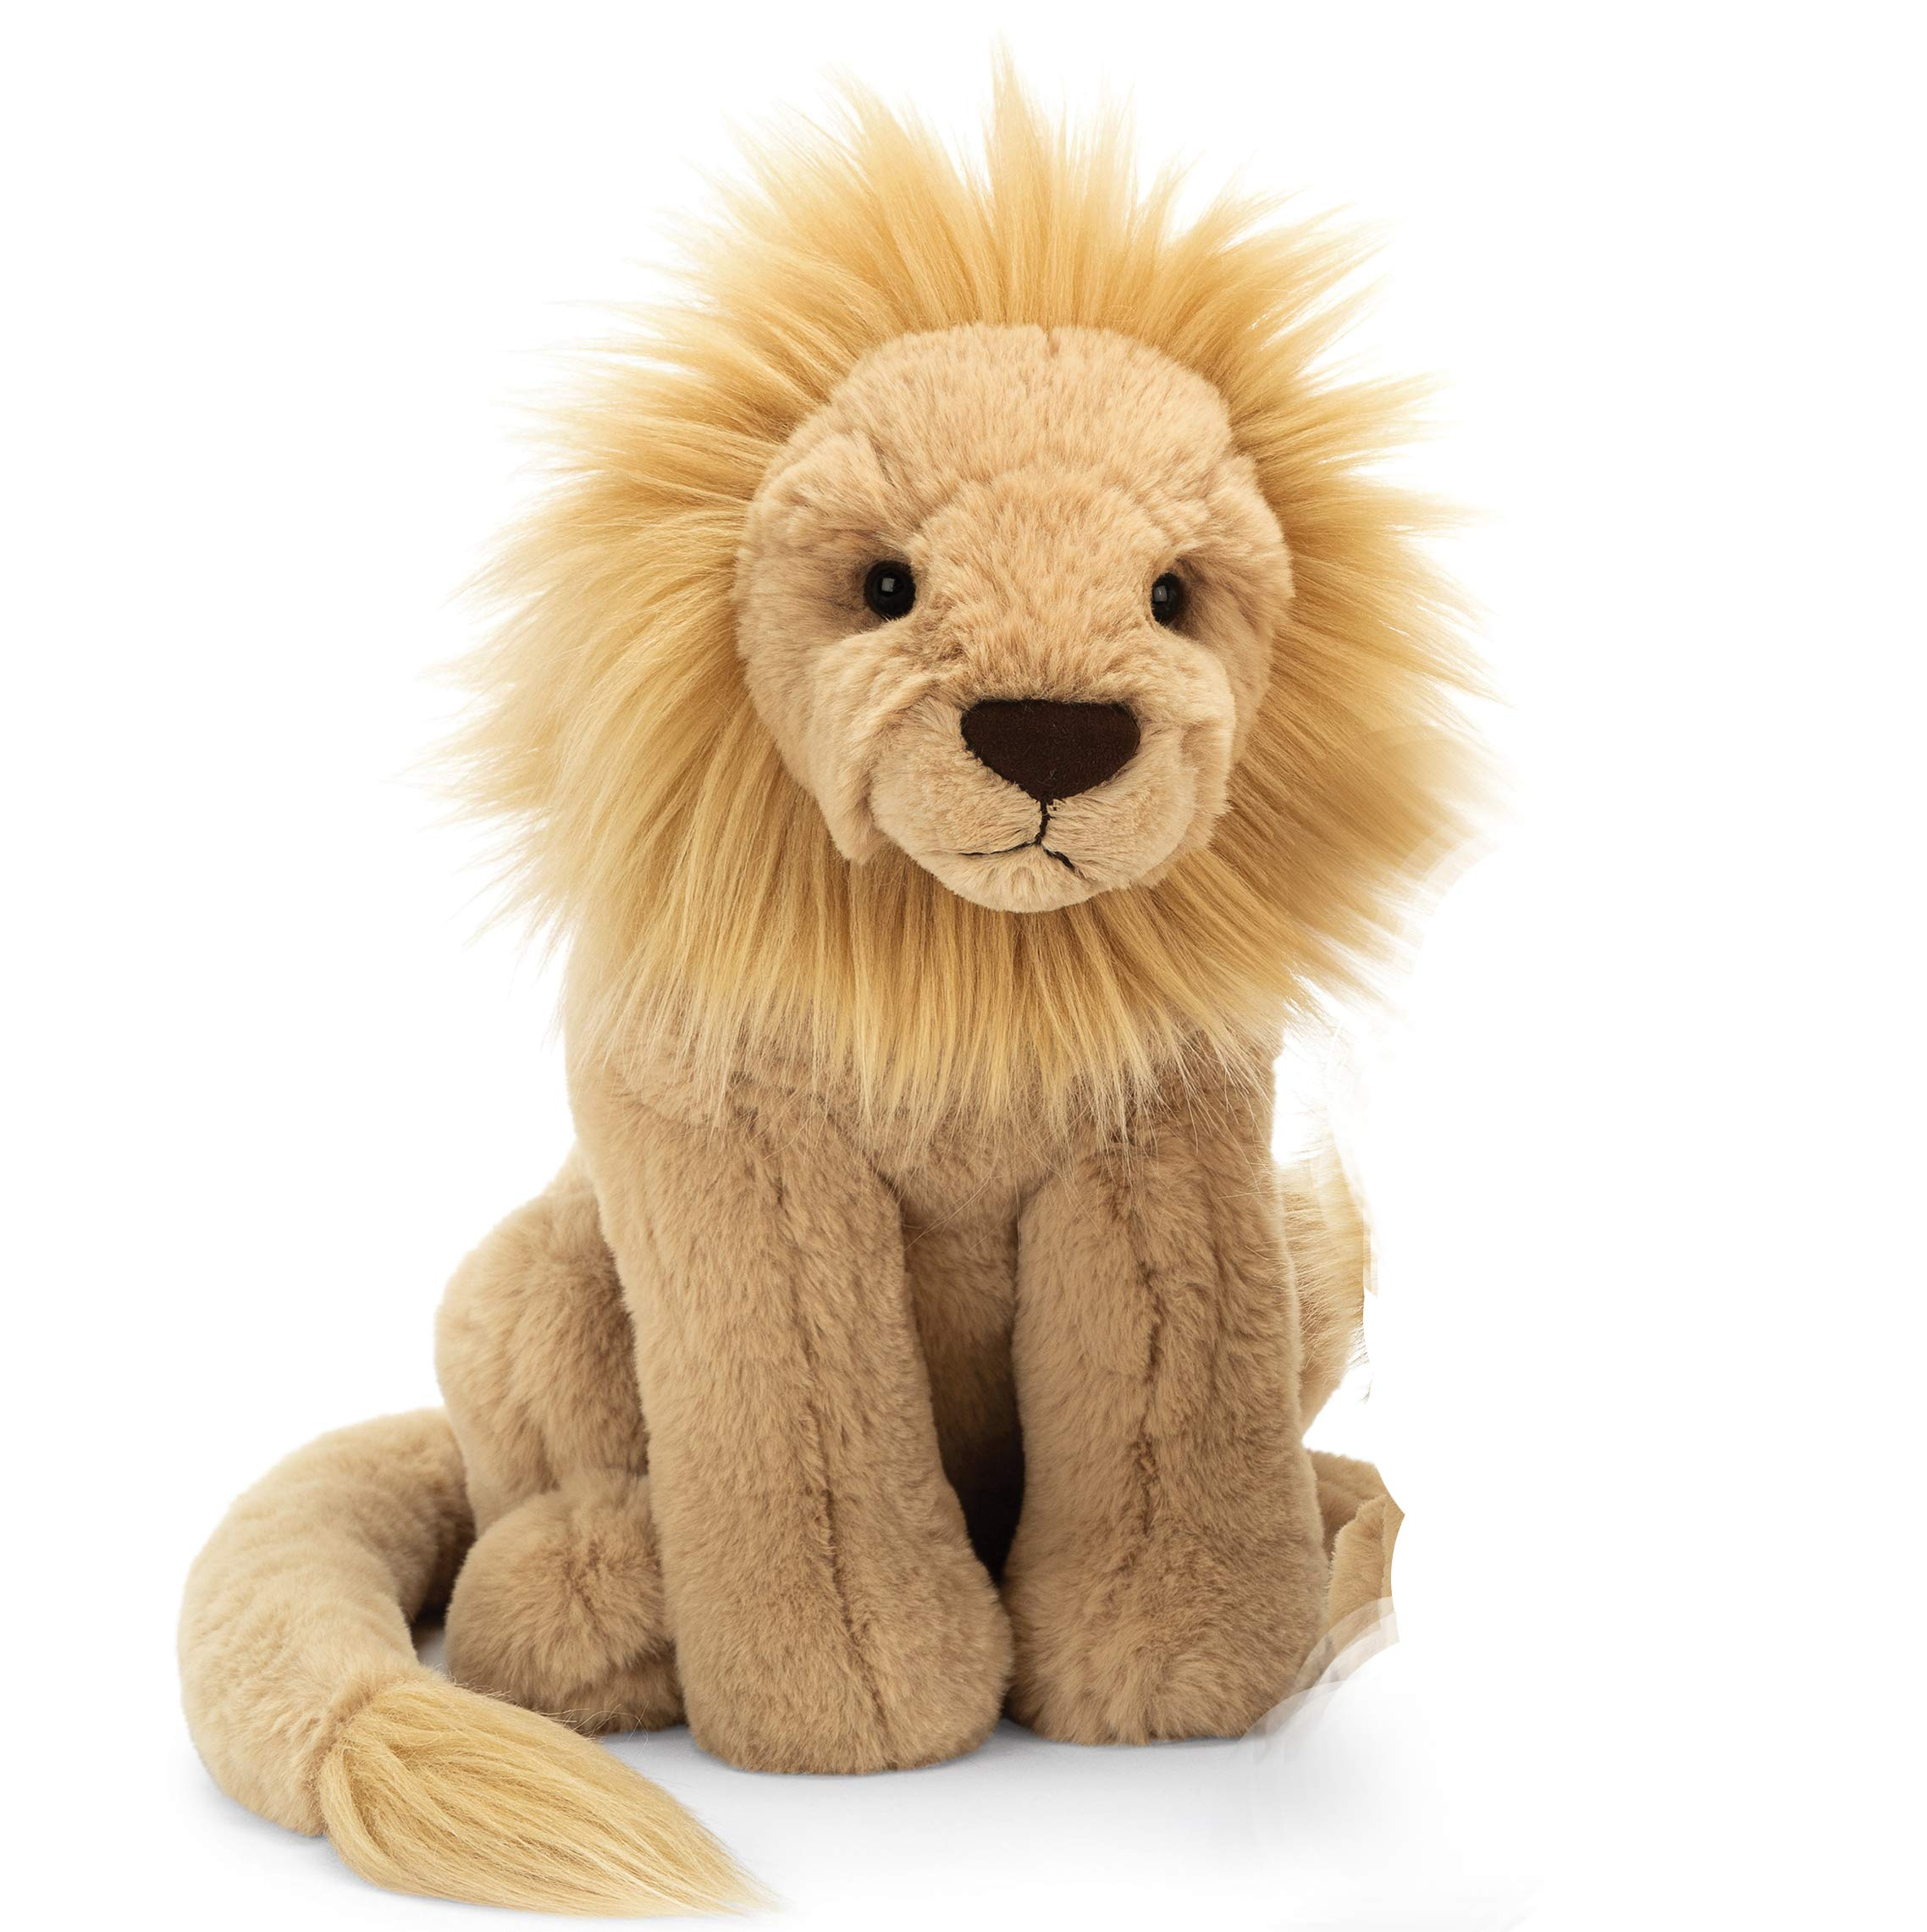 Jellycat Leonardo Lion Stuffed Animal, Large, 15 inches by Jellycat